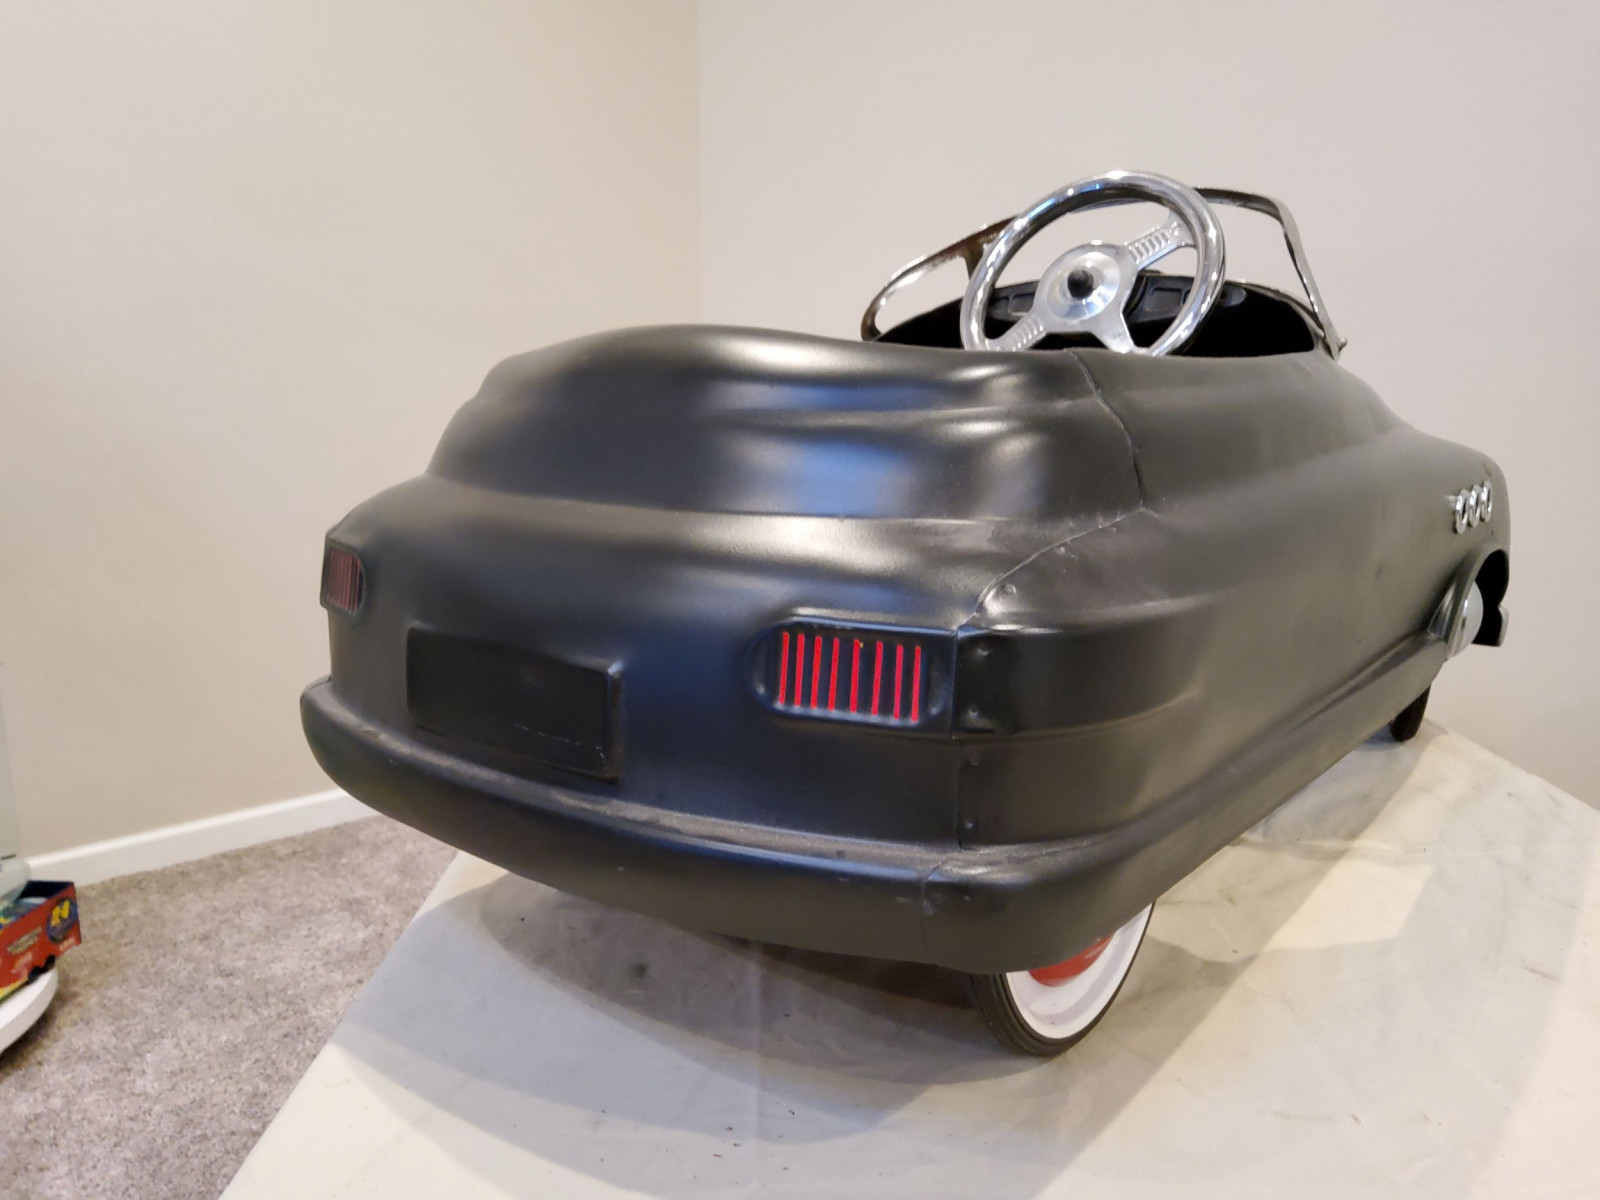 1961 Murray Low Rider Custom Pedal Car - Image 7